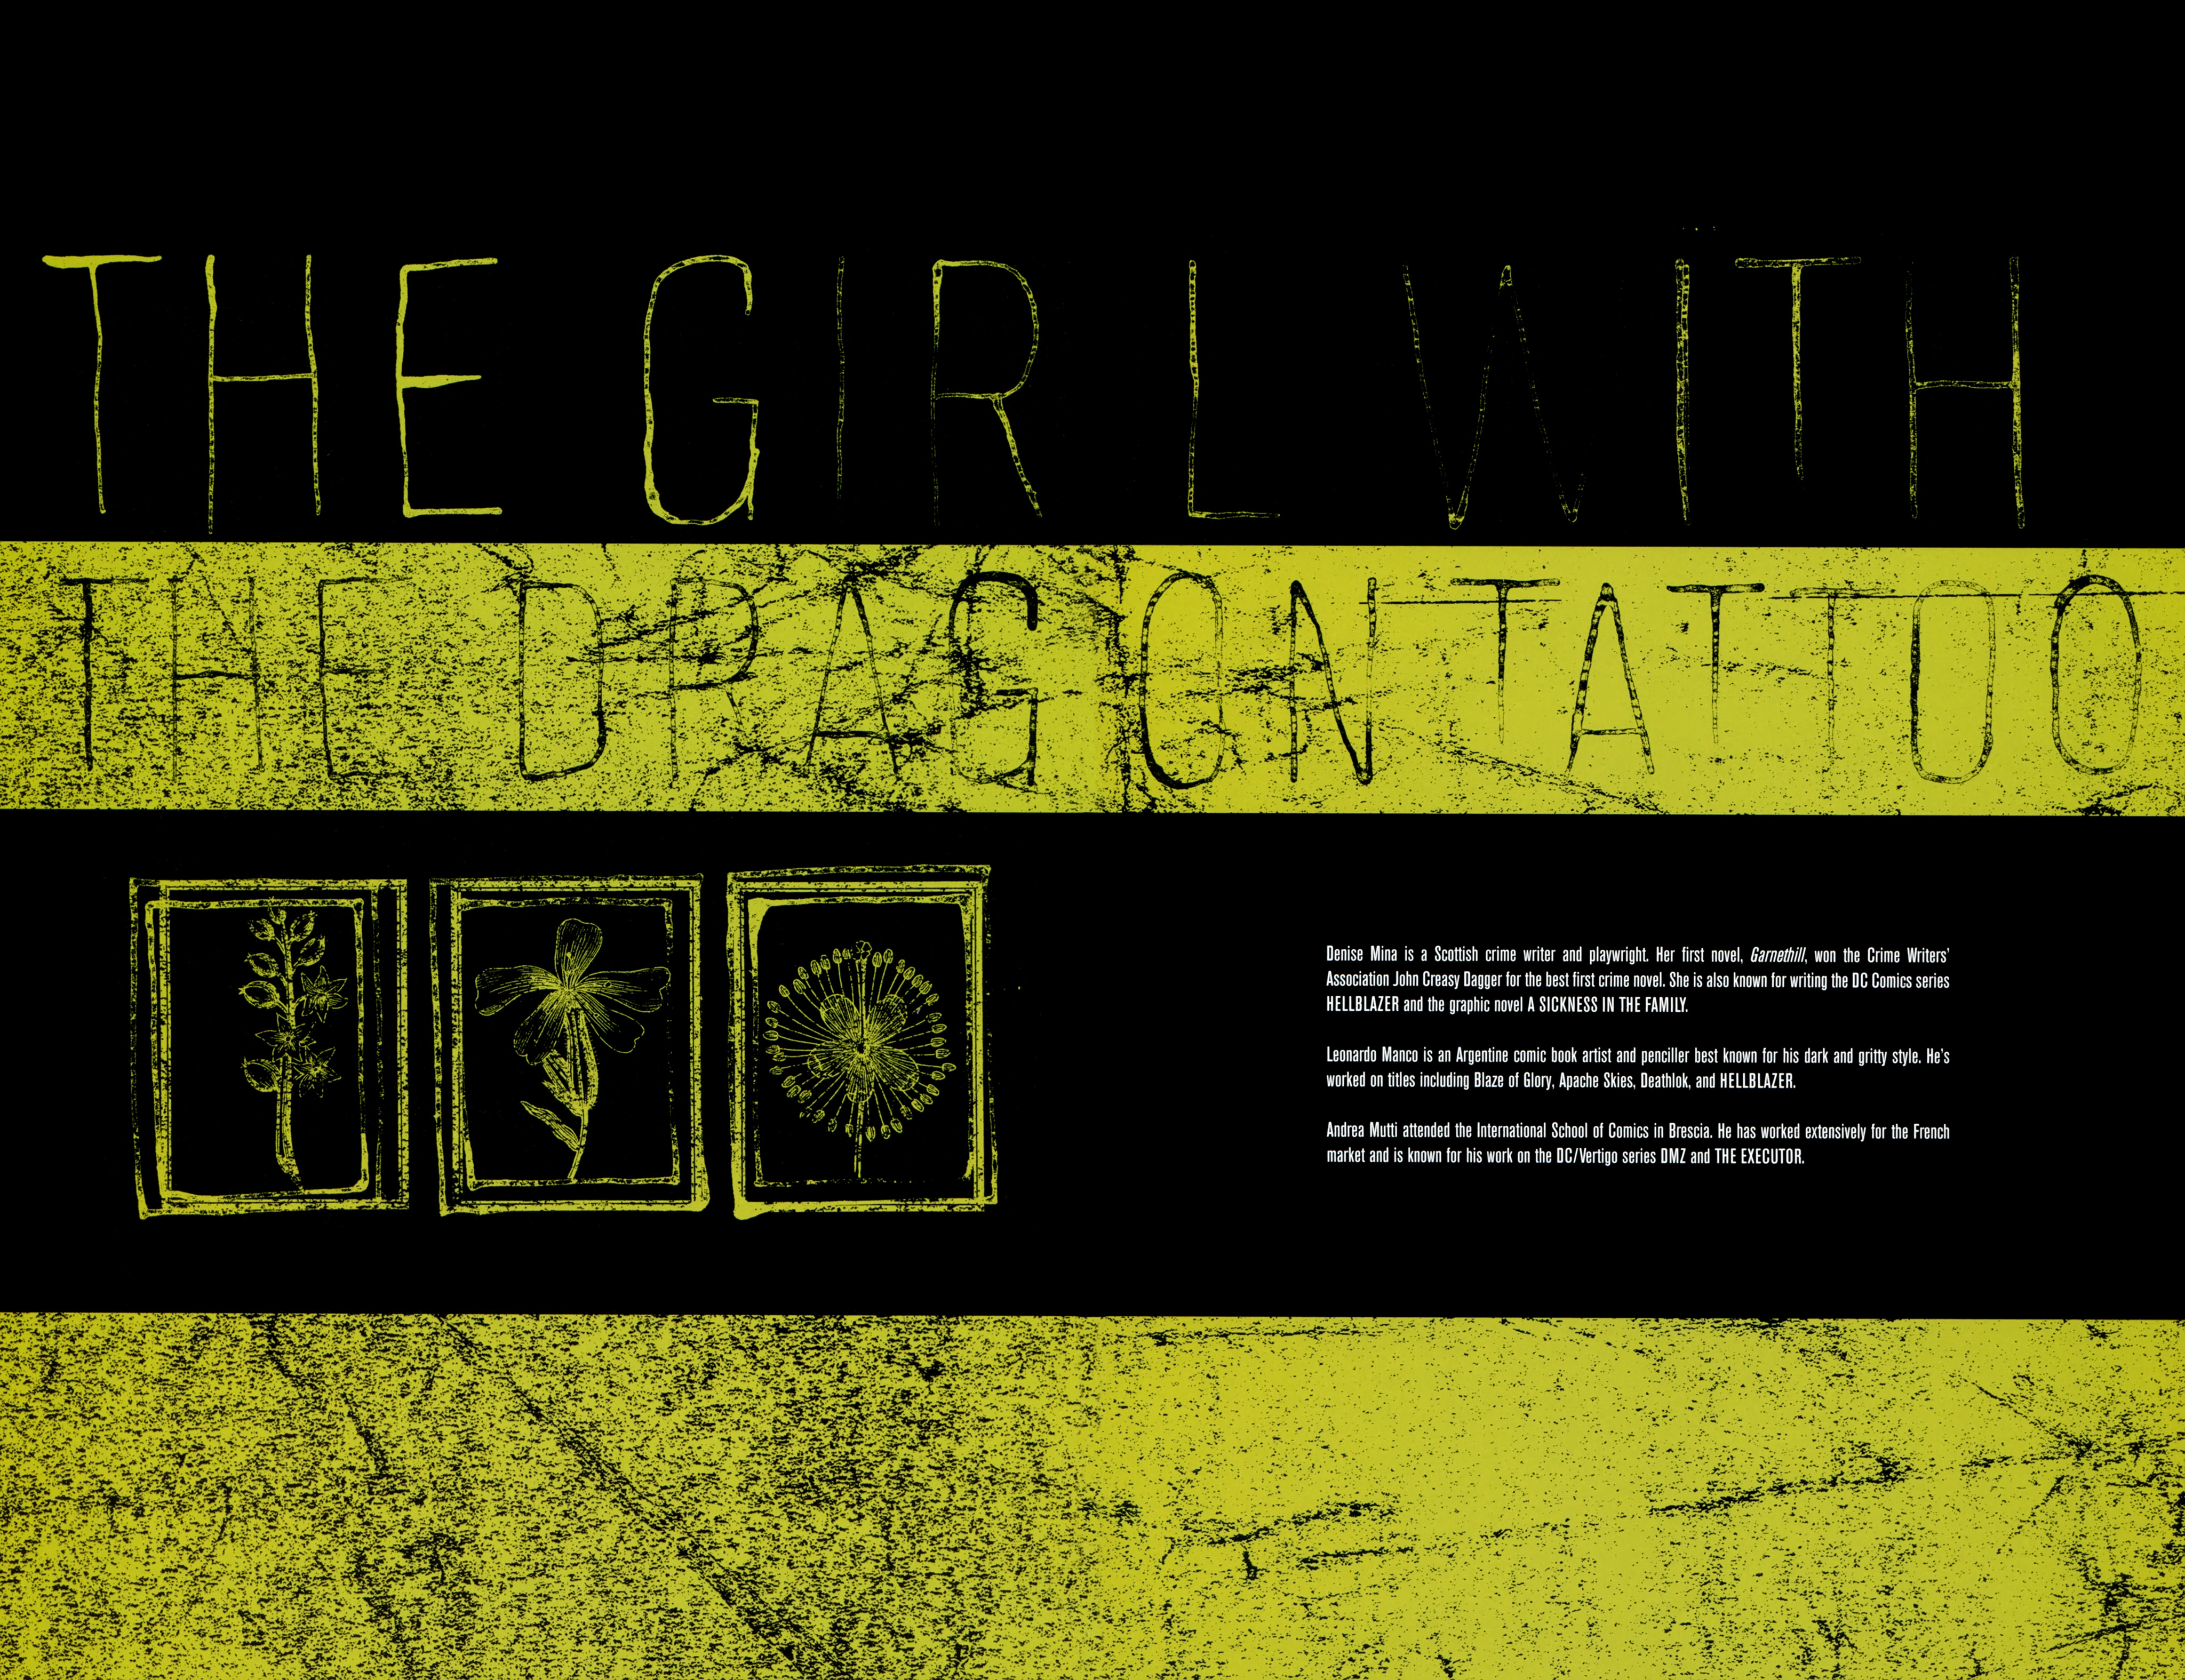 Read online The Girl With the Dragon Tattoo comic -  Issue # TPB 2 - 157